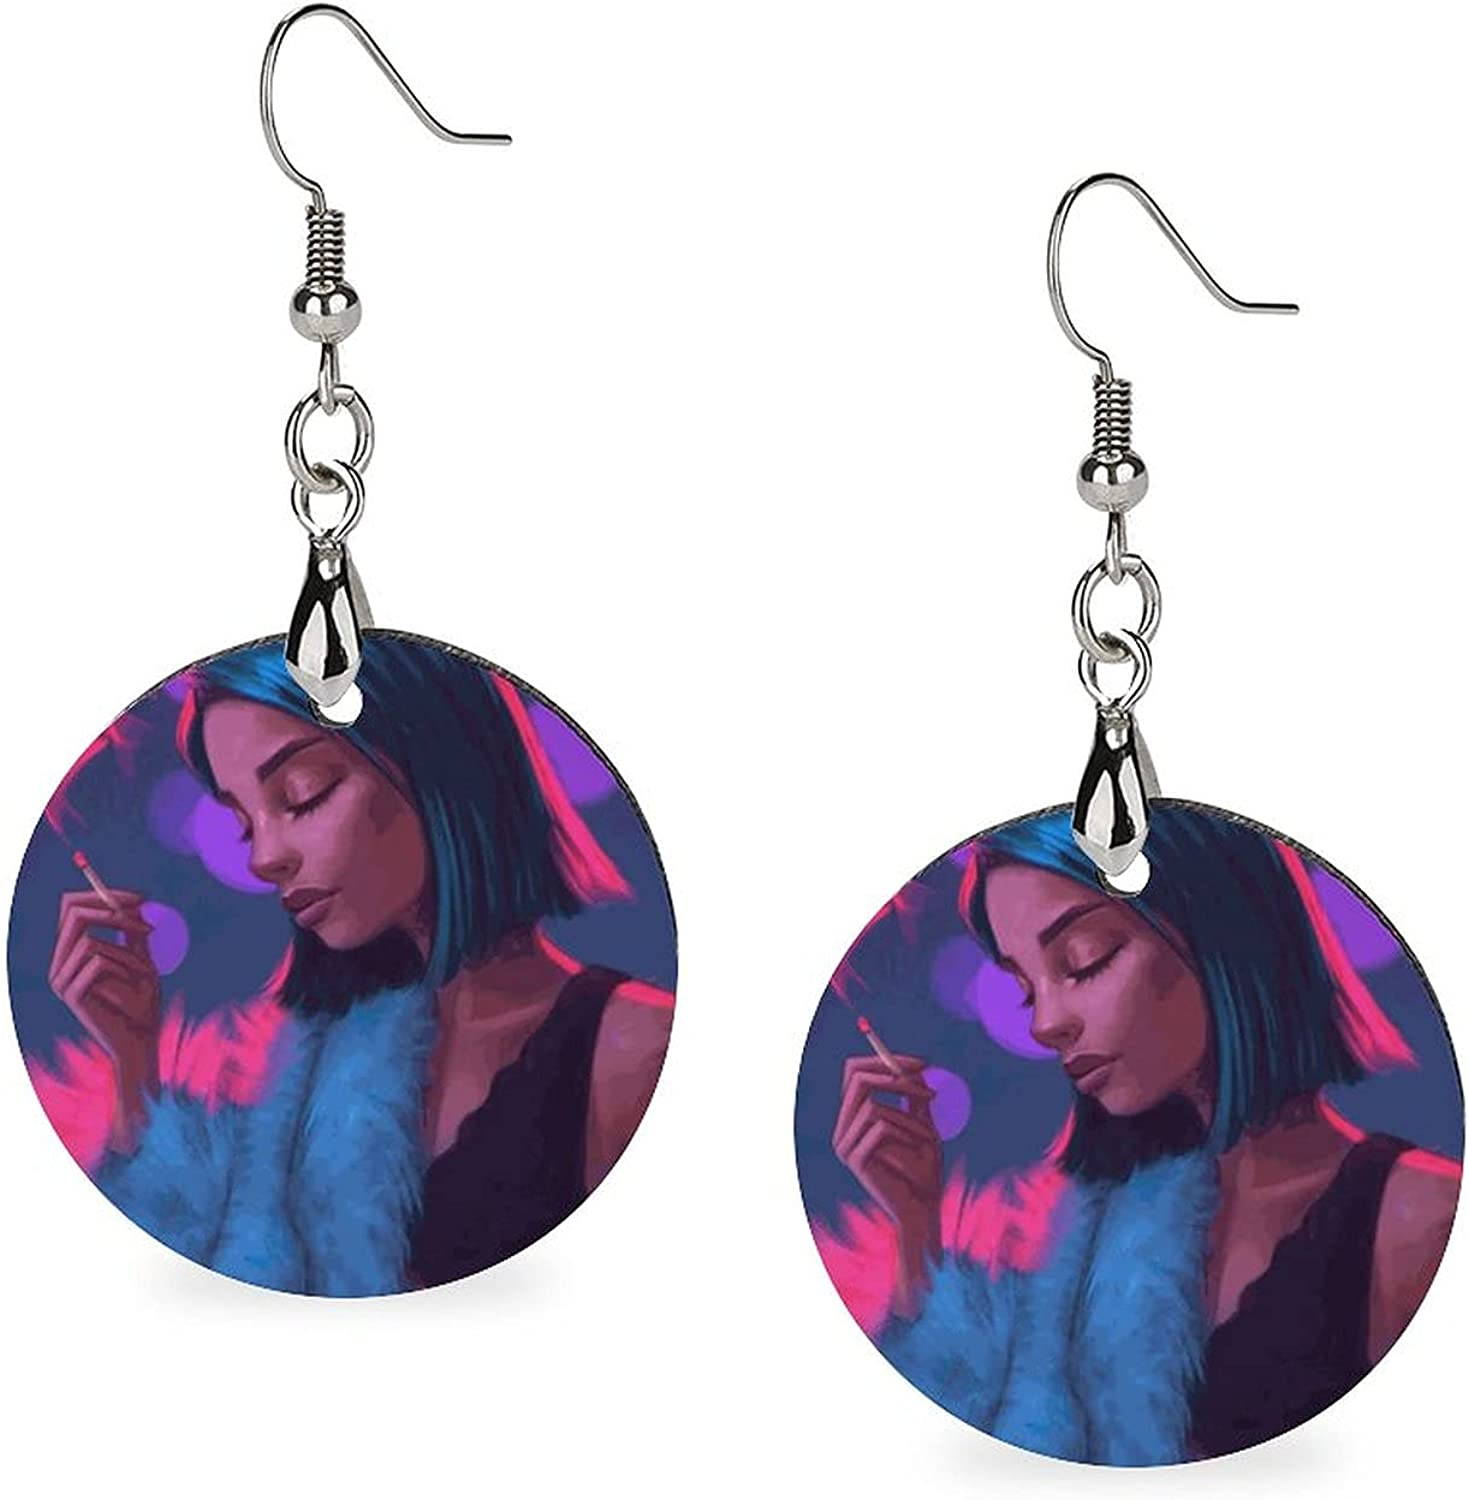 Wooden Circular Luxury Drop Earrings Costume Accessories for Women Everyday